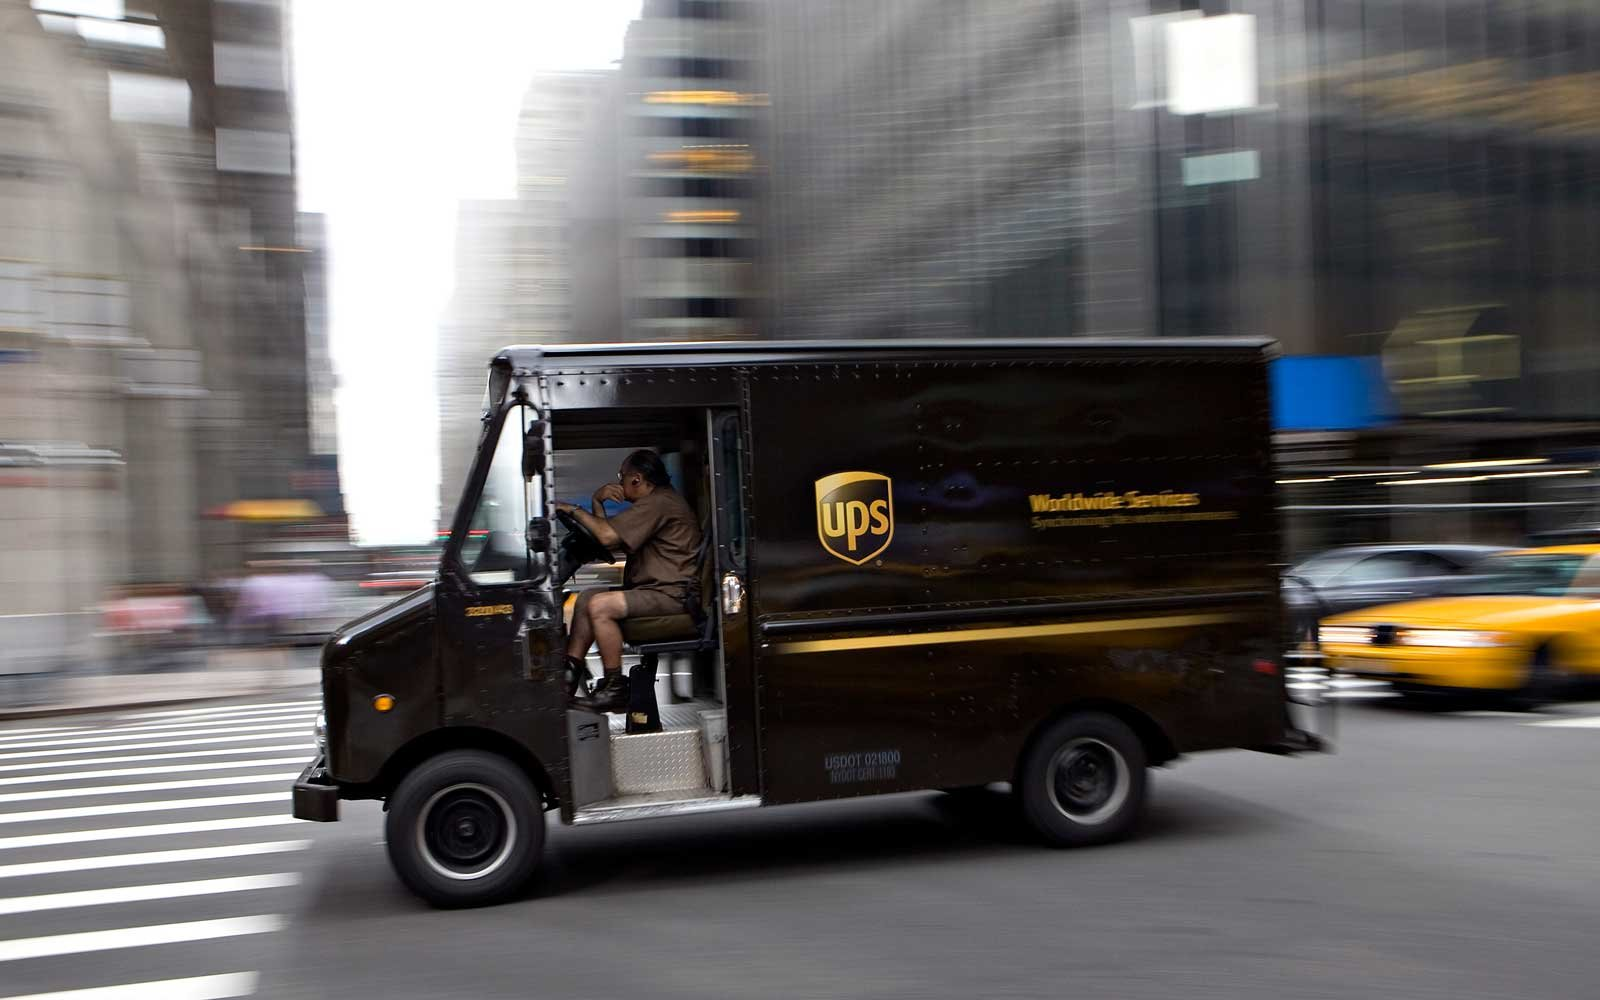 UPS Trucks Don't Make Left Turns